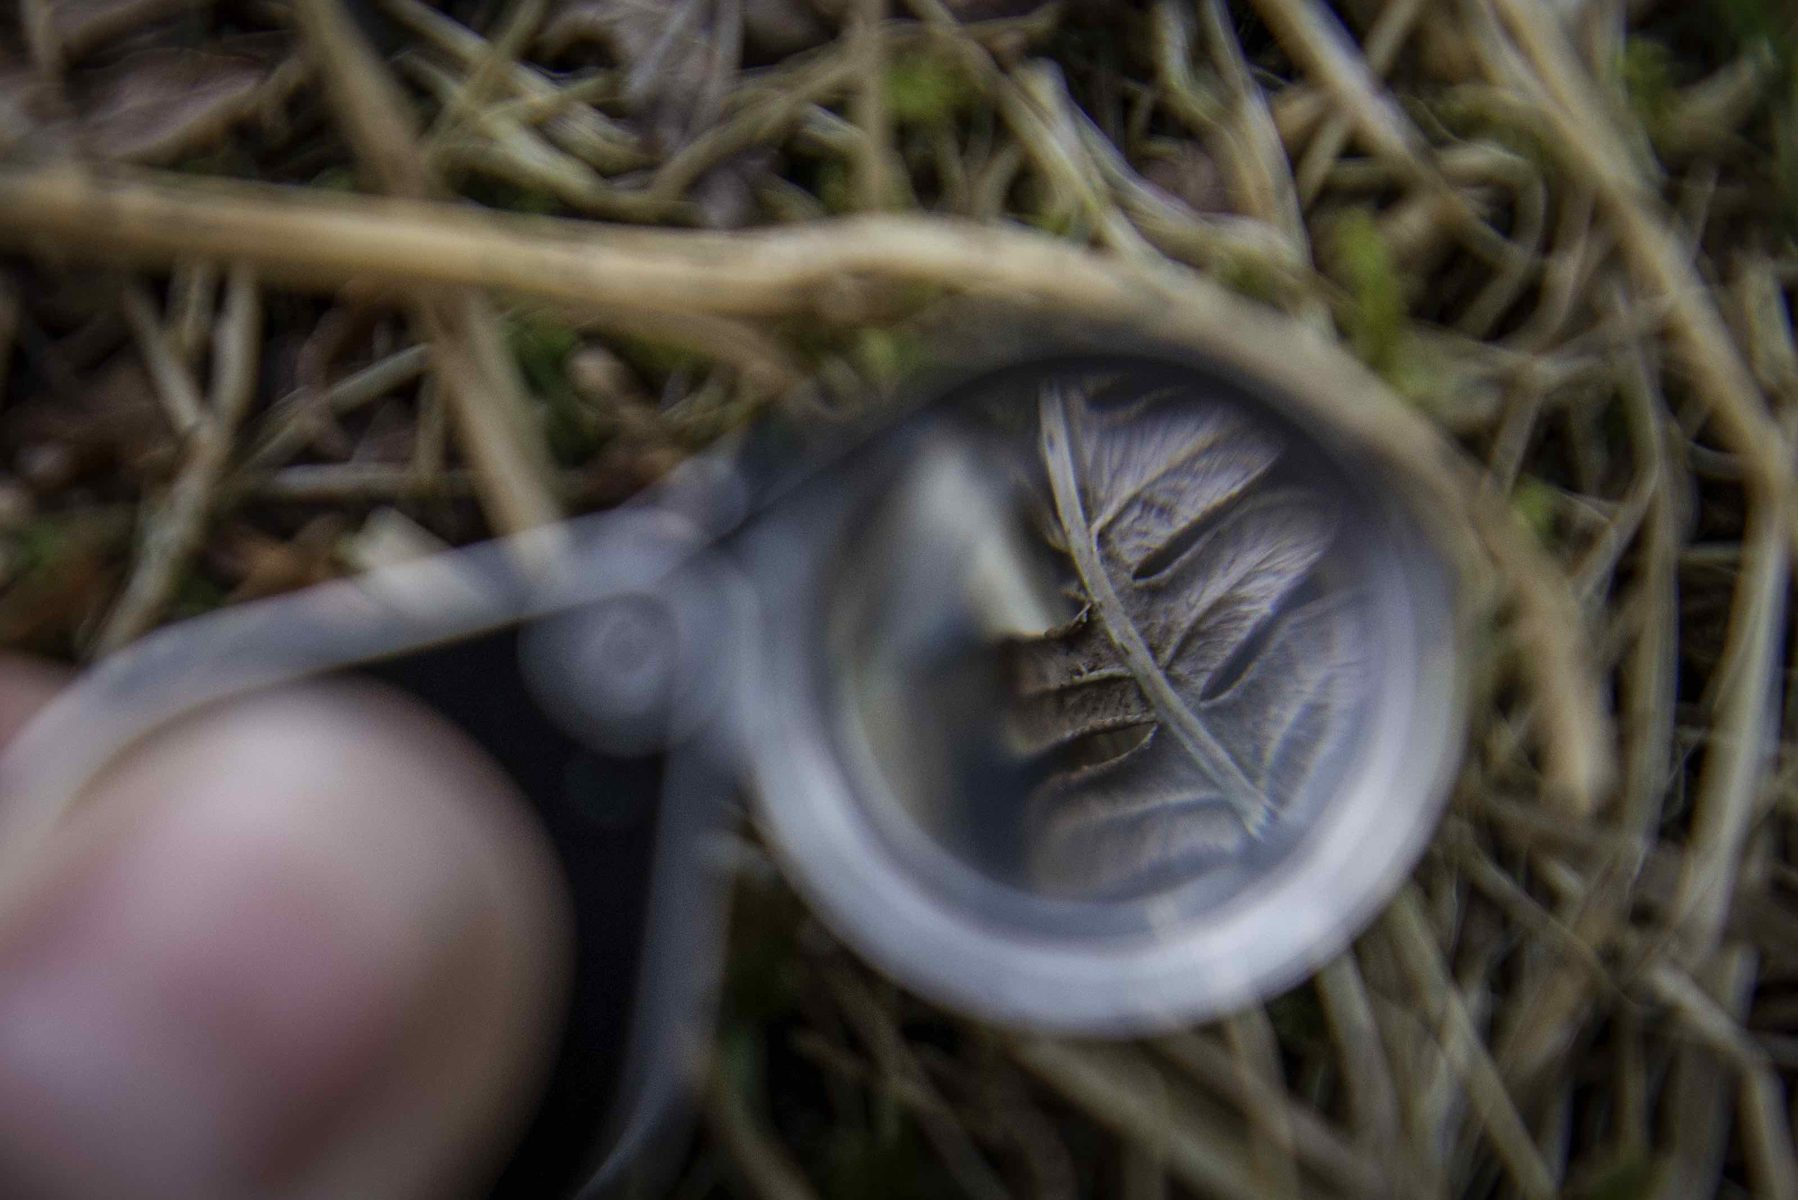 Warnscale geology eyeglass, Warnscale Fells, Buttermere, Cumbria. Photographer: Lizzie Coombes.